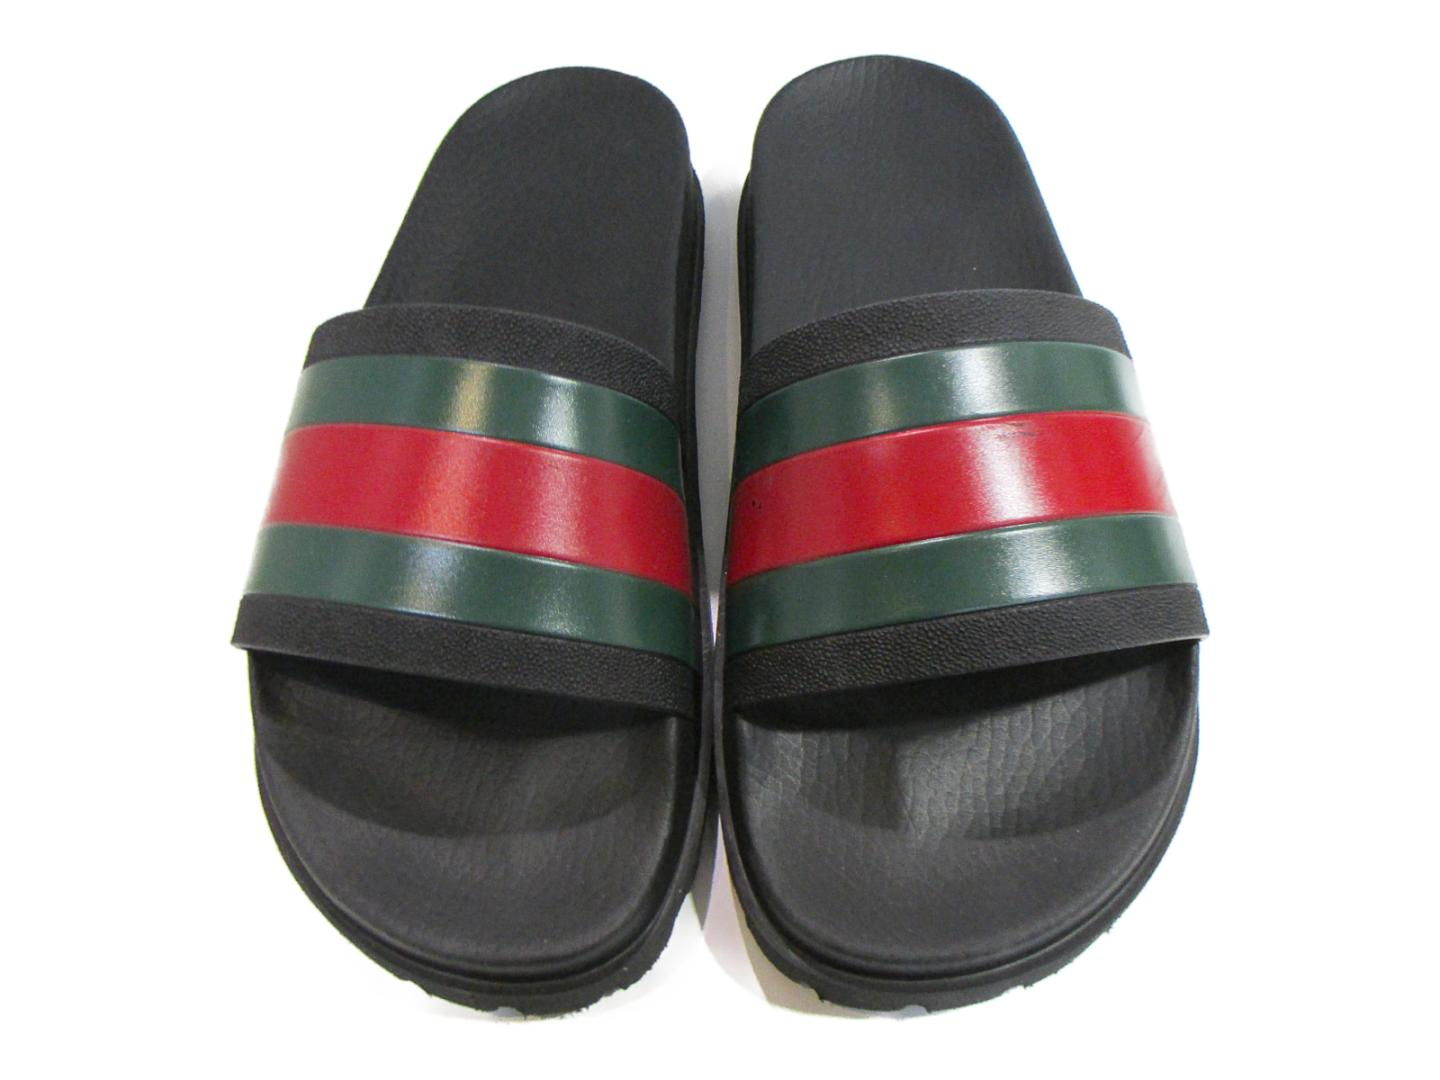 9151395c1c1 Authentic GUCCI Web Slide Sandals Or Other Mens Leather Black X Green Red  429469GIB101098